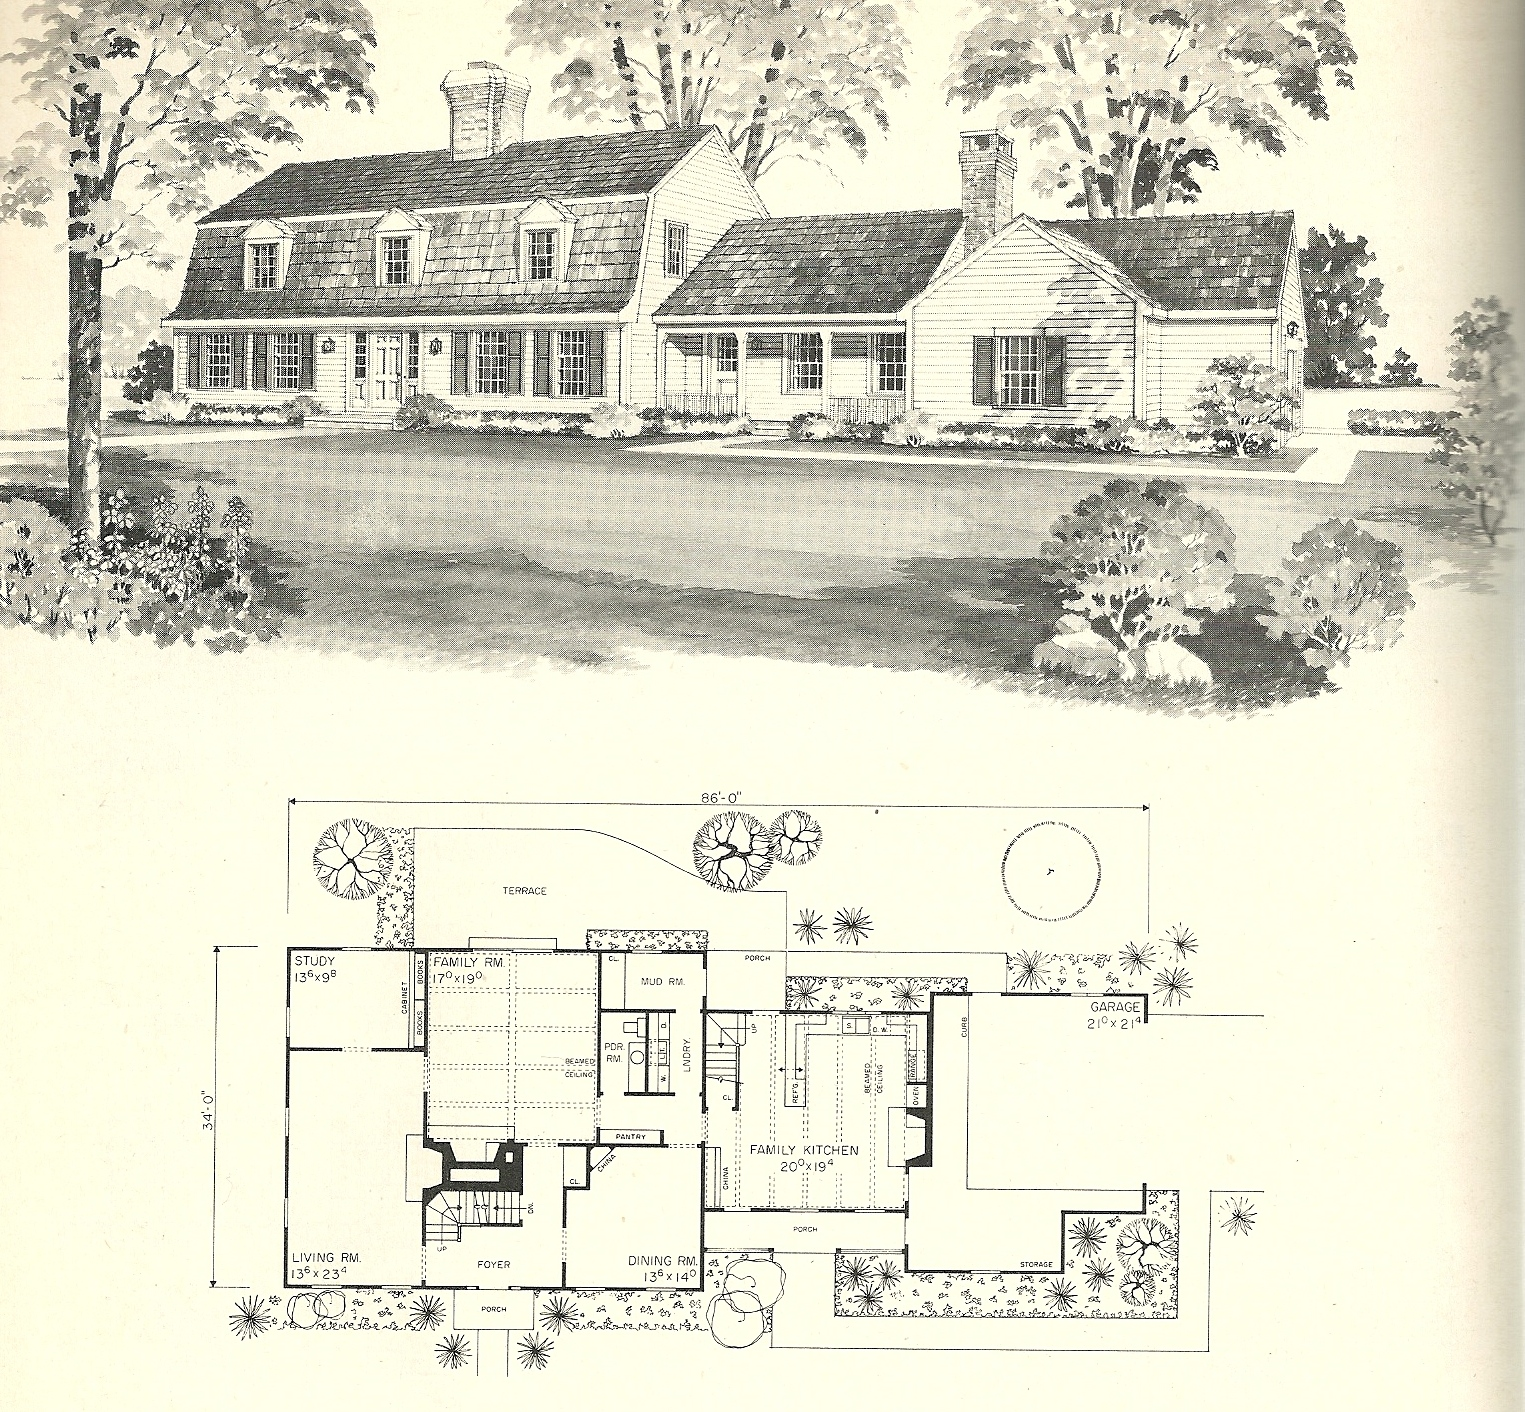 Vintage home plans gambrel 2 antique alter ego for Gambrel roof house plans